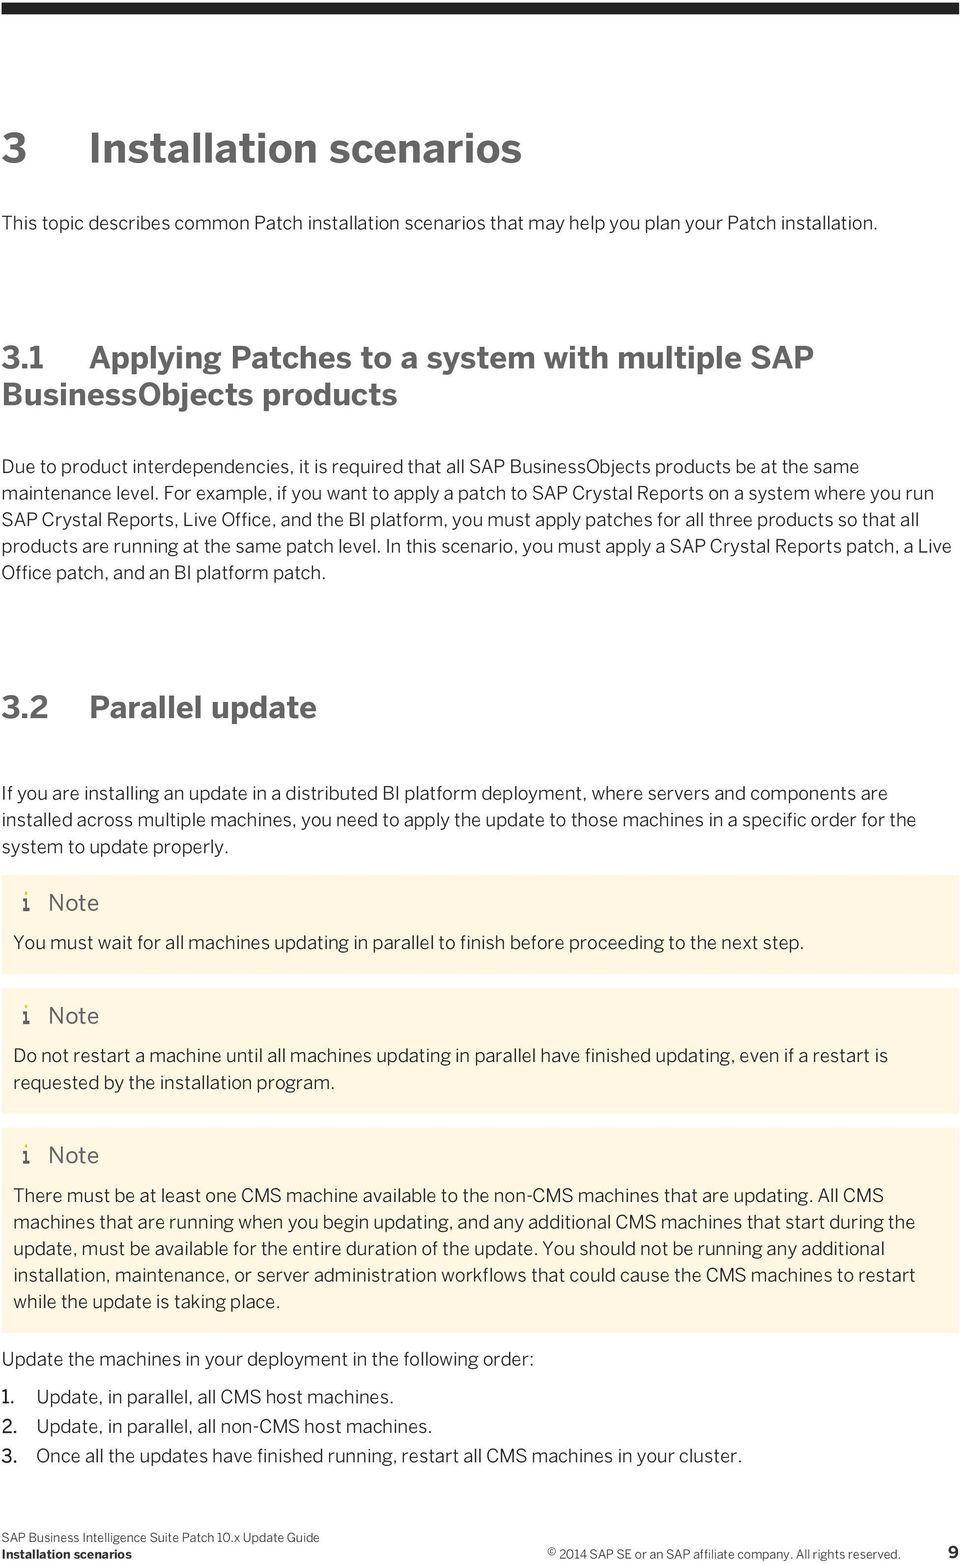 For example, if you want to apply a patch to SAP Crystal Reports on a system where you run SAP Crystal Reports, Live Office, and the BI platform, you must apply patches for all three products so that